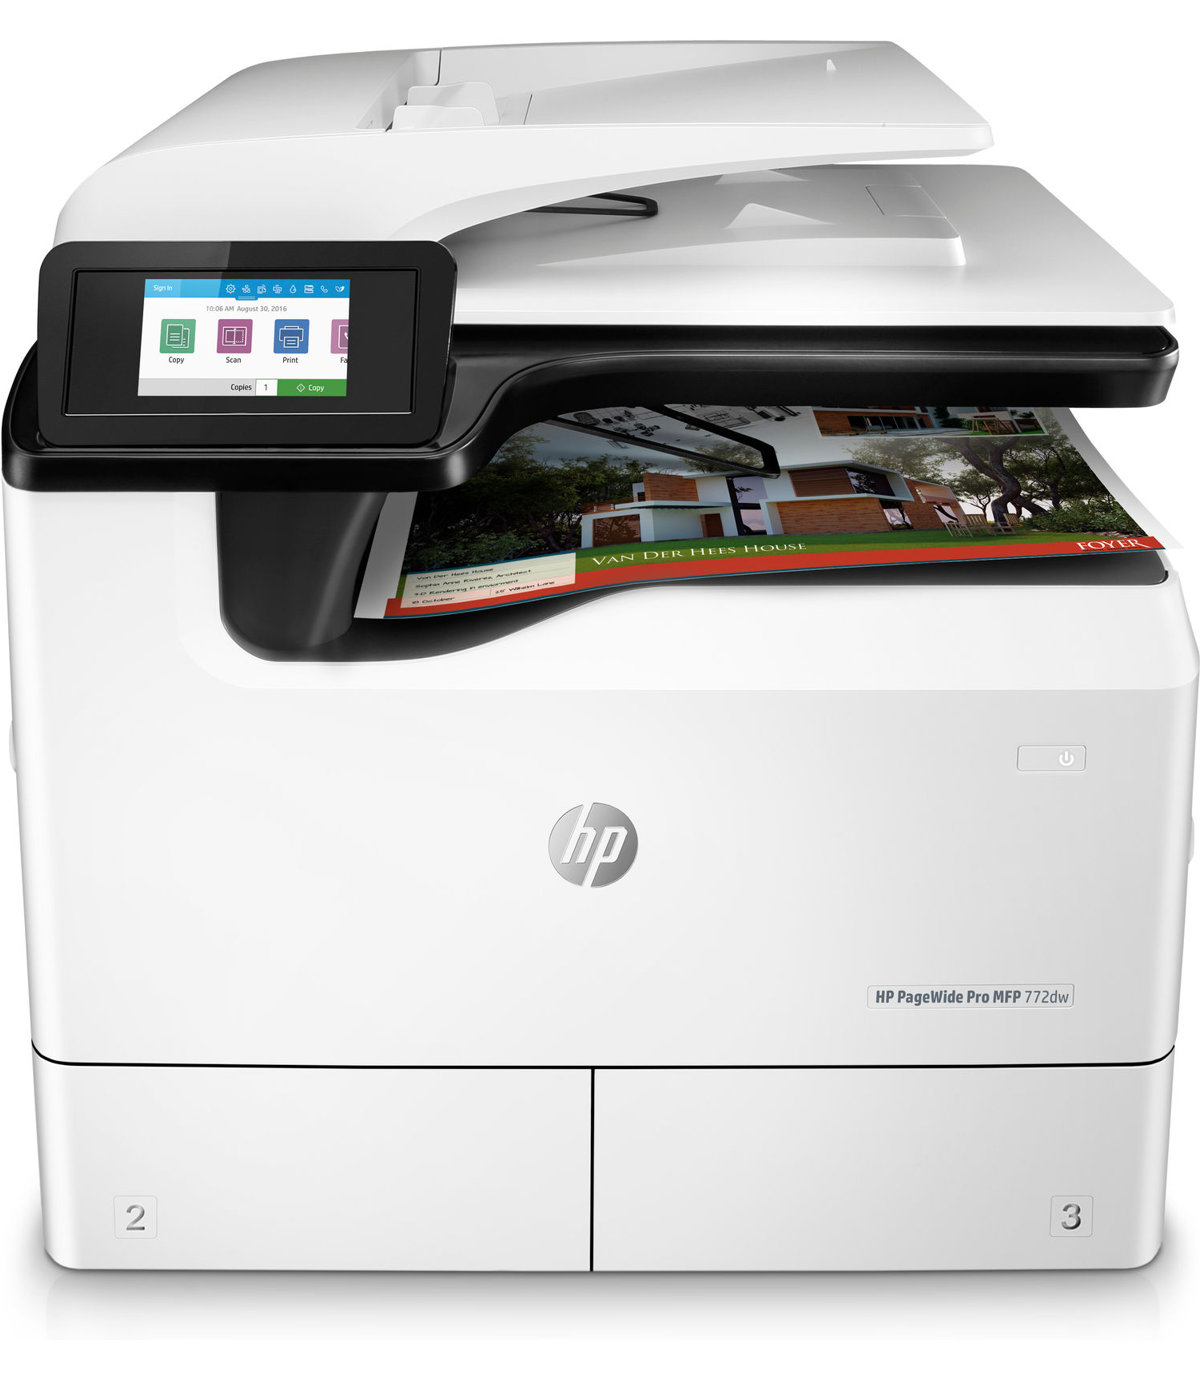 Product | HP PageWide Pro 772dw - multifunction printer (color)